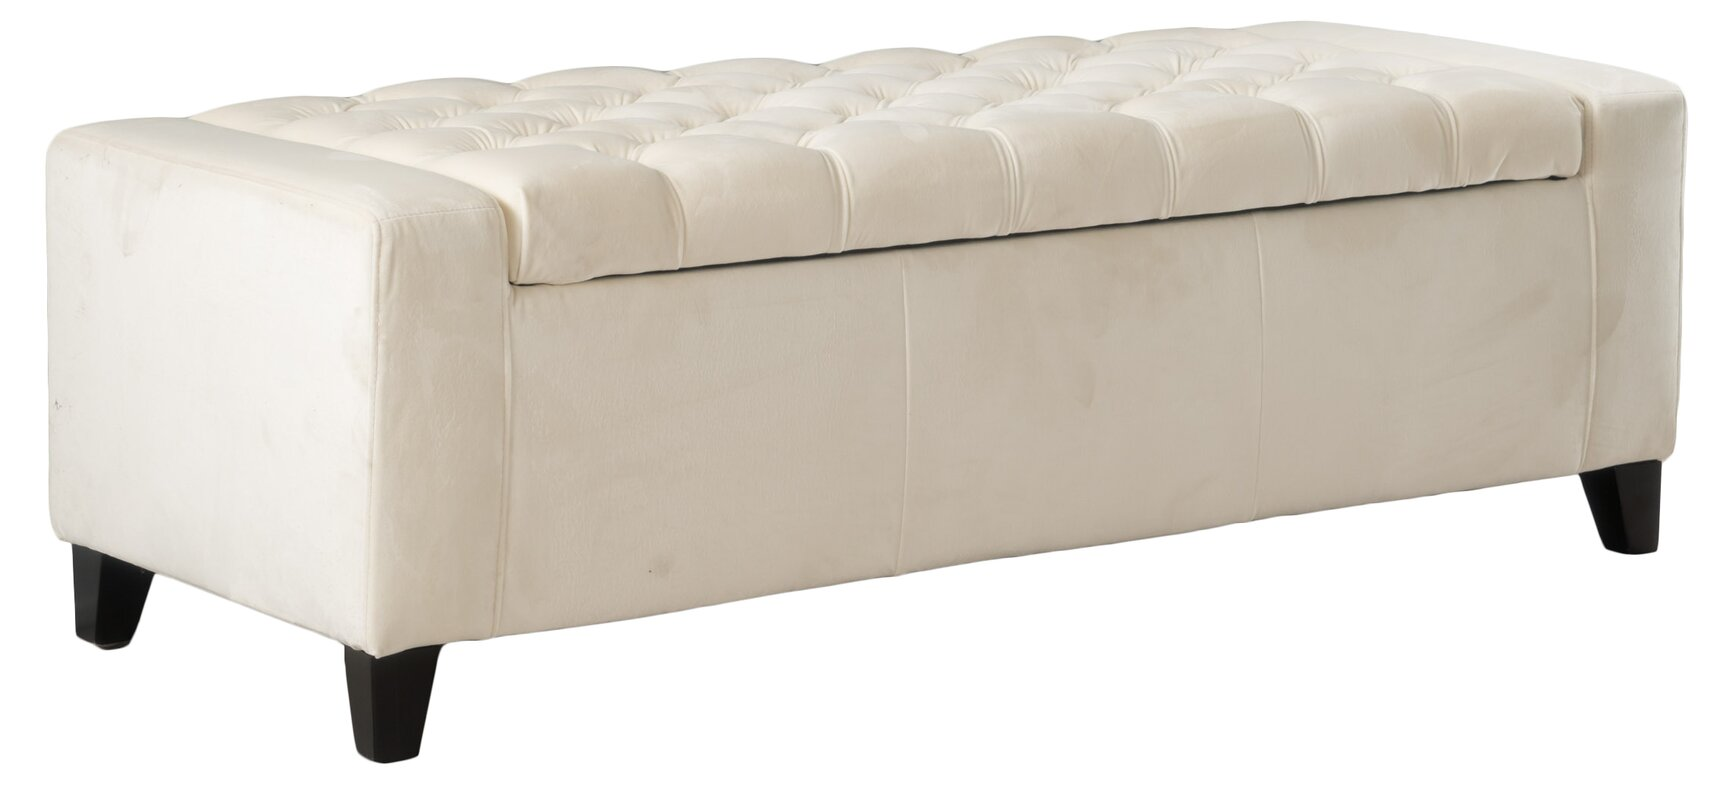 ilchester upholstered storage bench. house of hampton ilchester upholstered storage bench  reviews